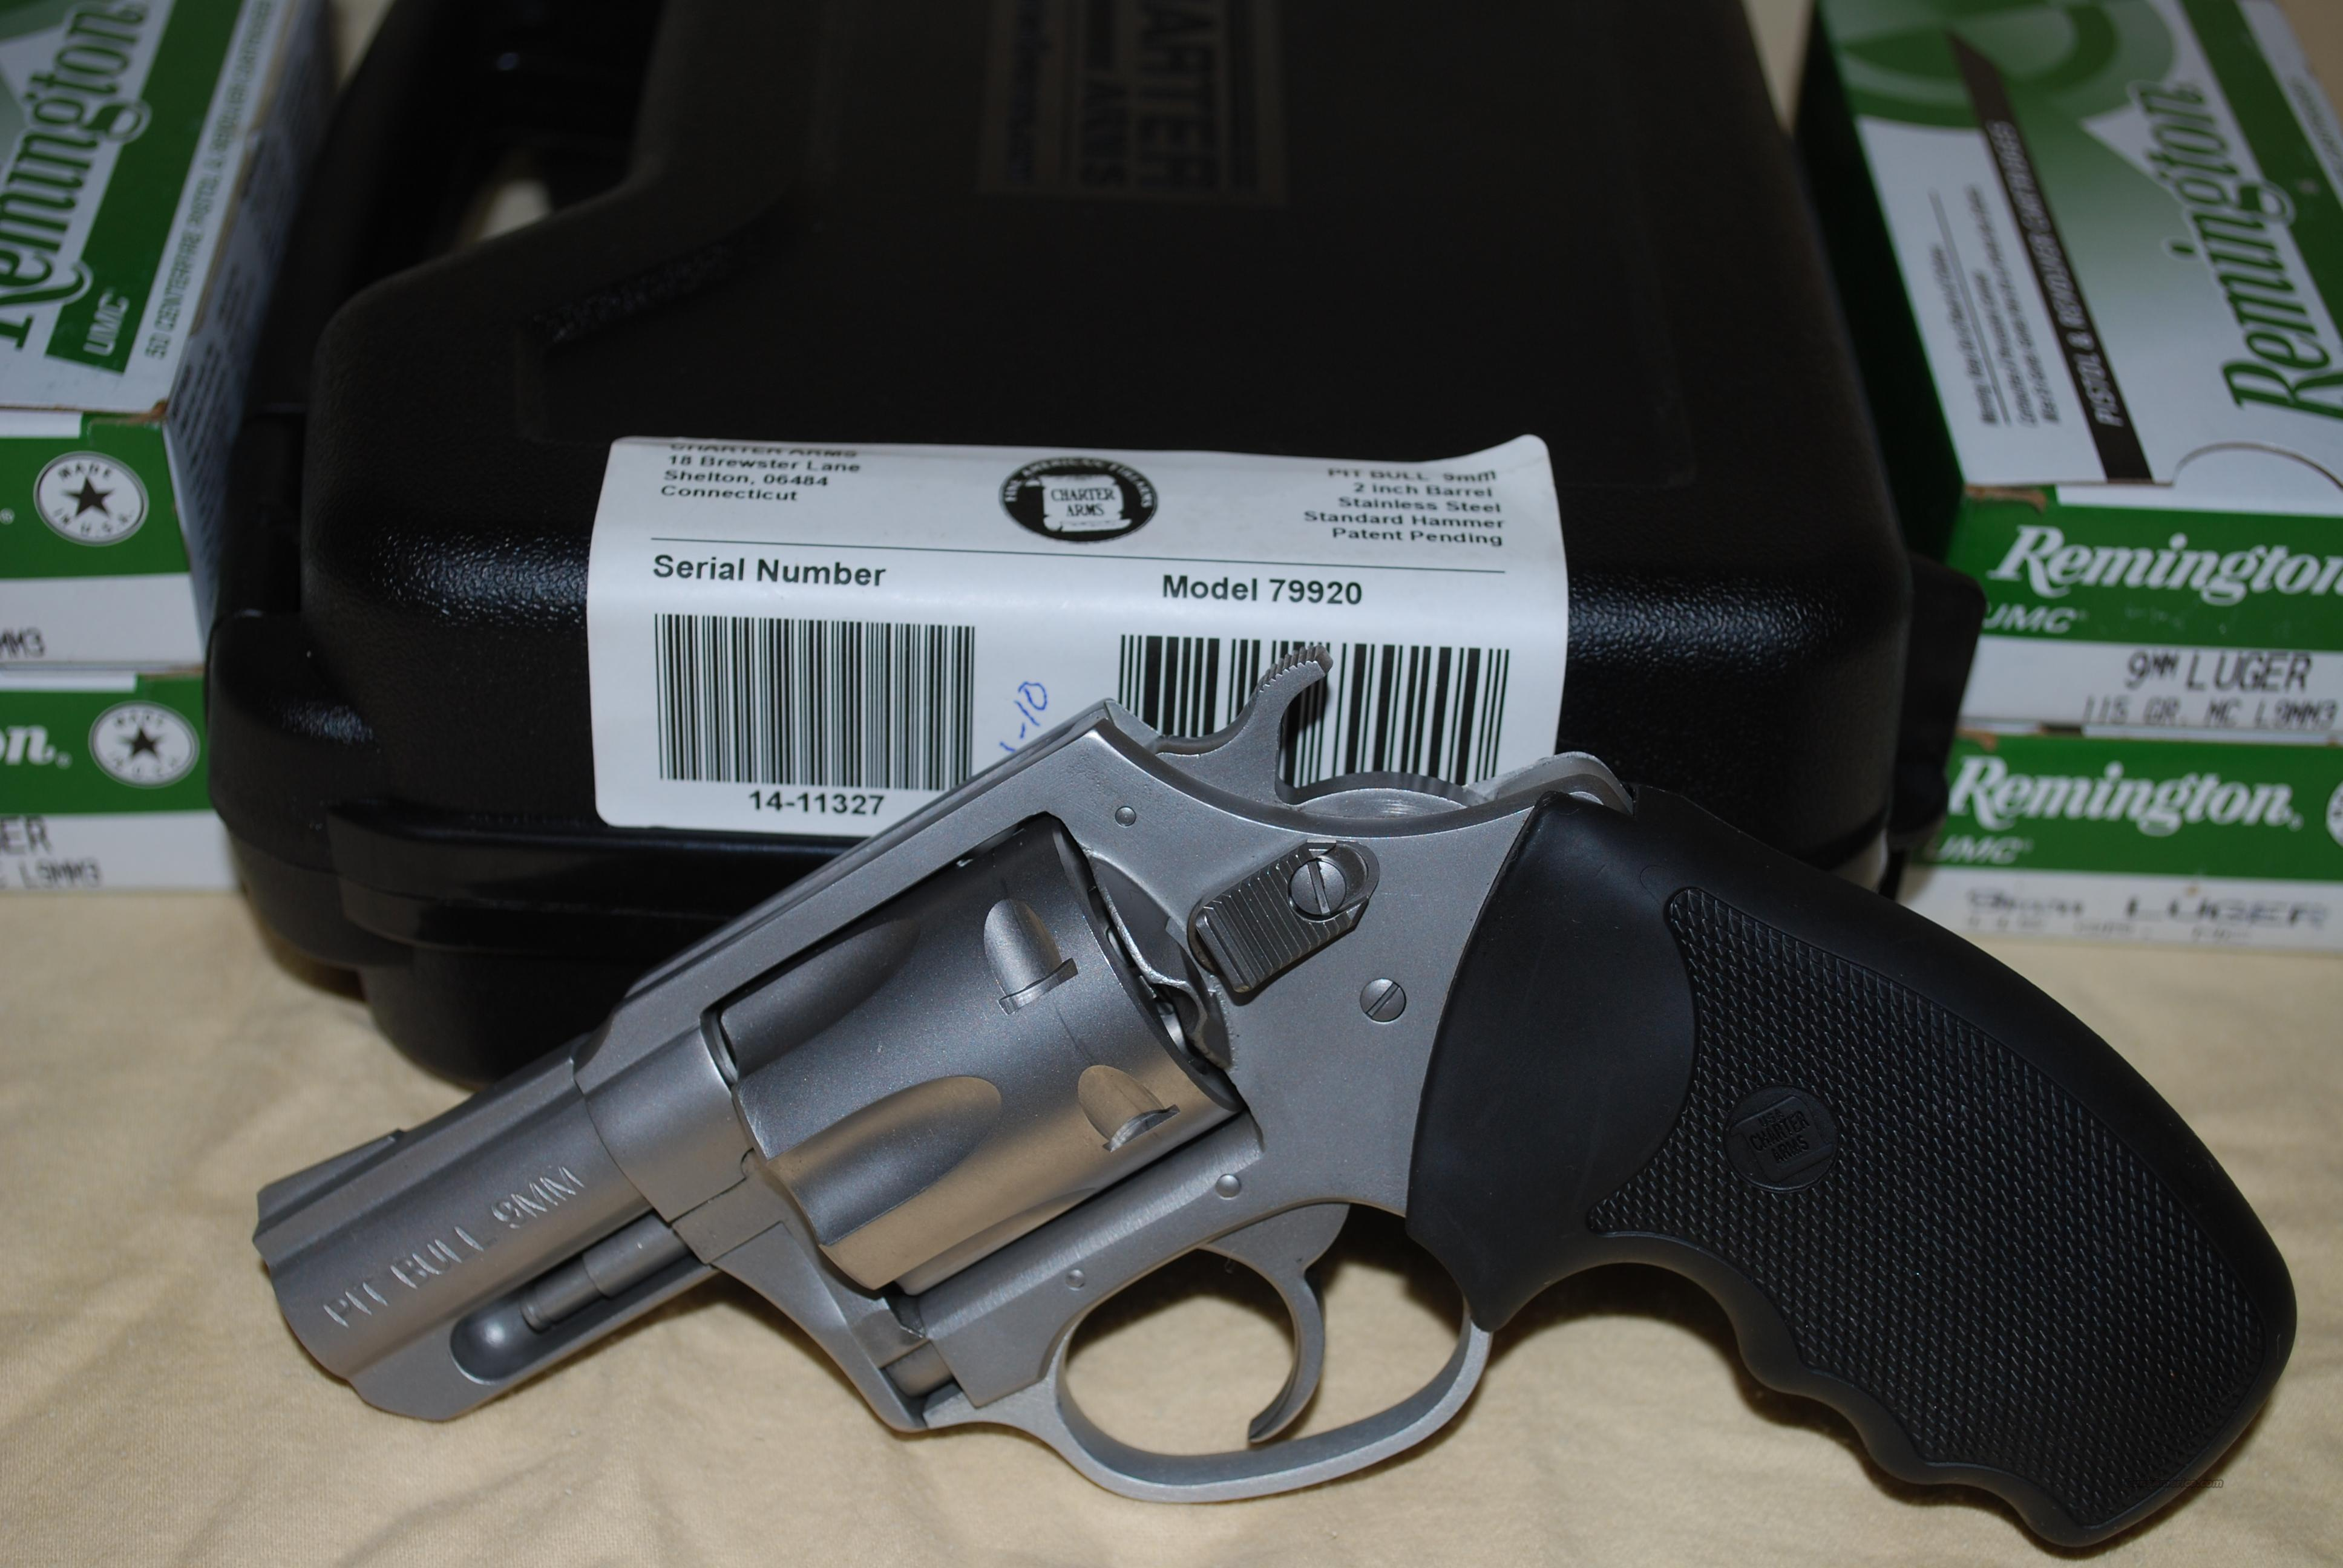 *RARE* Pit Bull 9MM Rimless Revolver NIB plus AMMO ~ NO MOON CLIPS REQUIRED!!!!!!!!!  Guns > Pistols > Charter Arms Revolvers